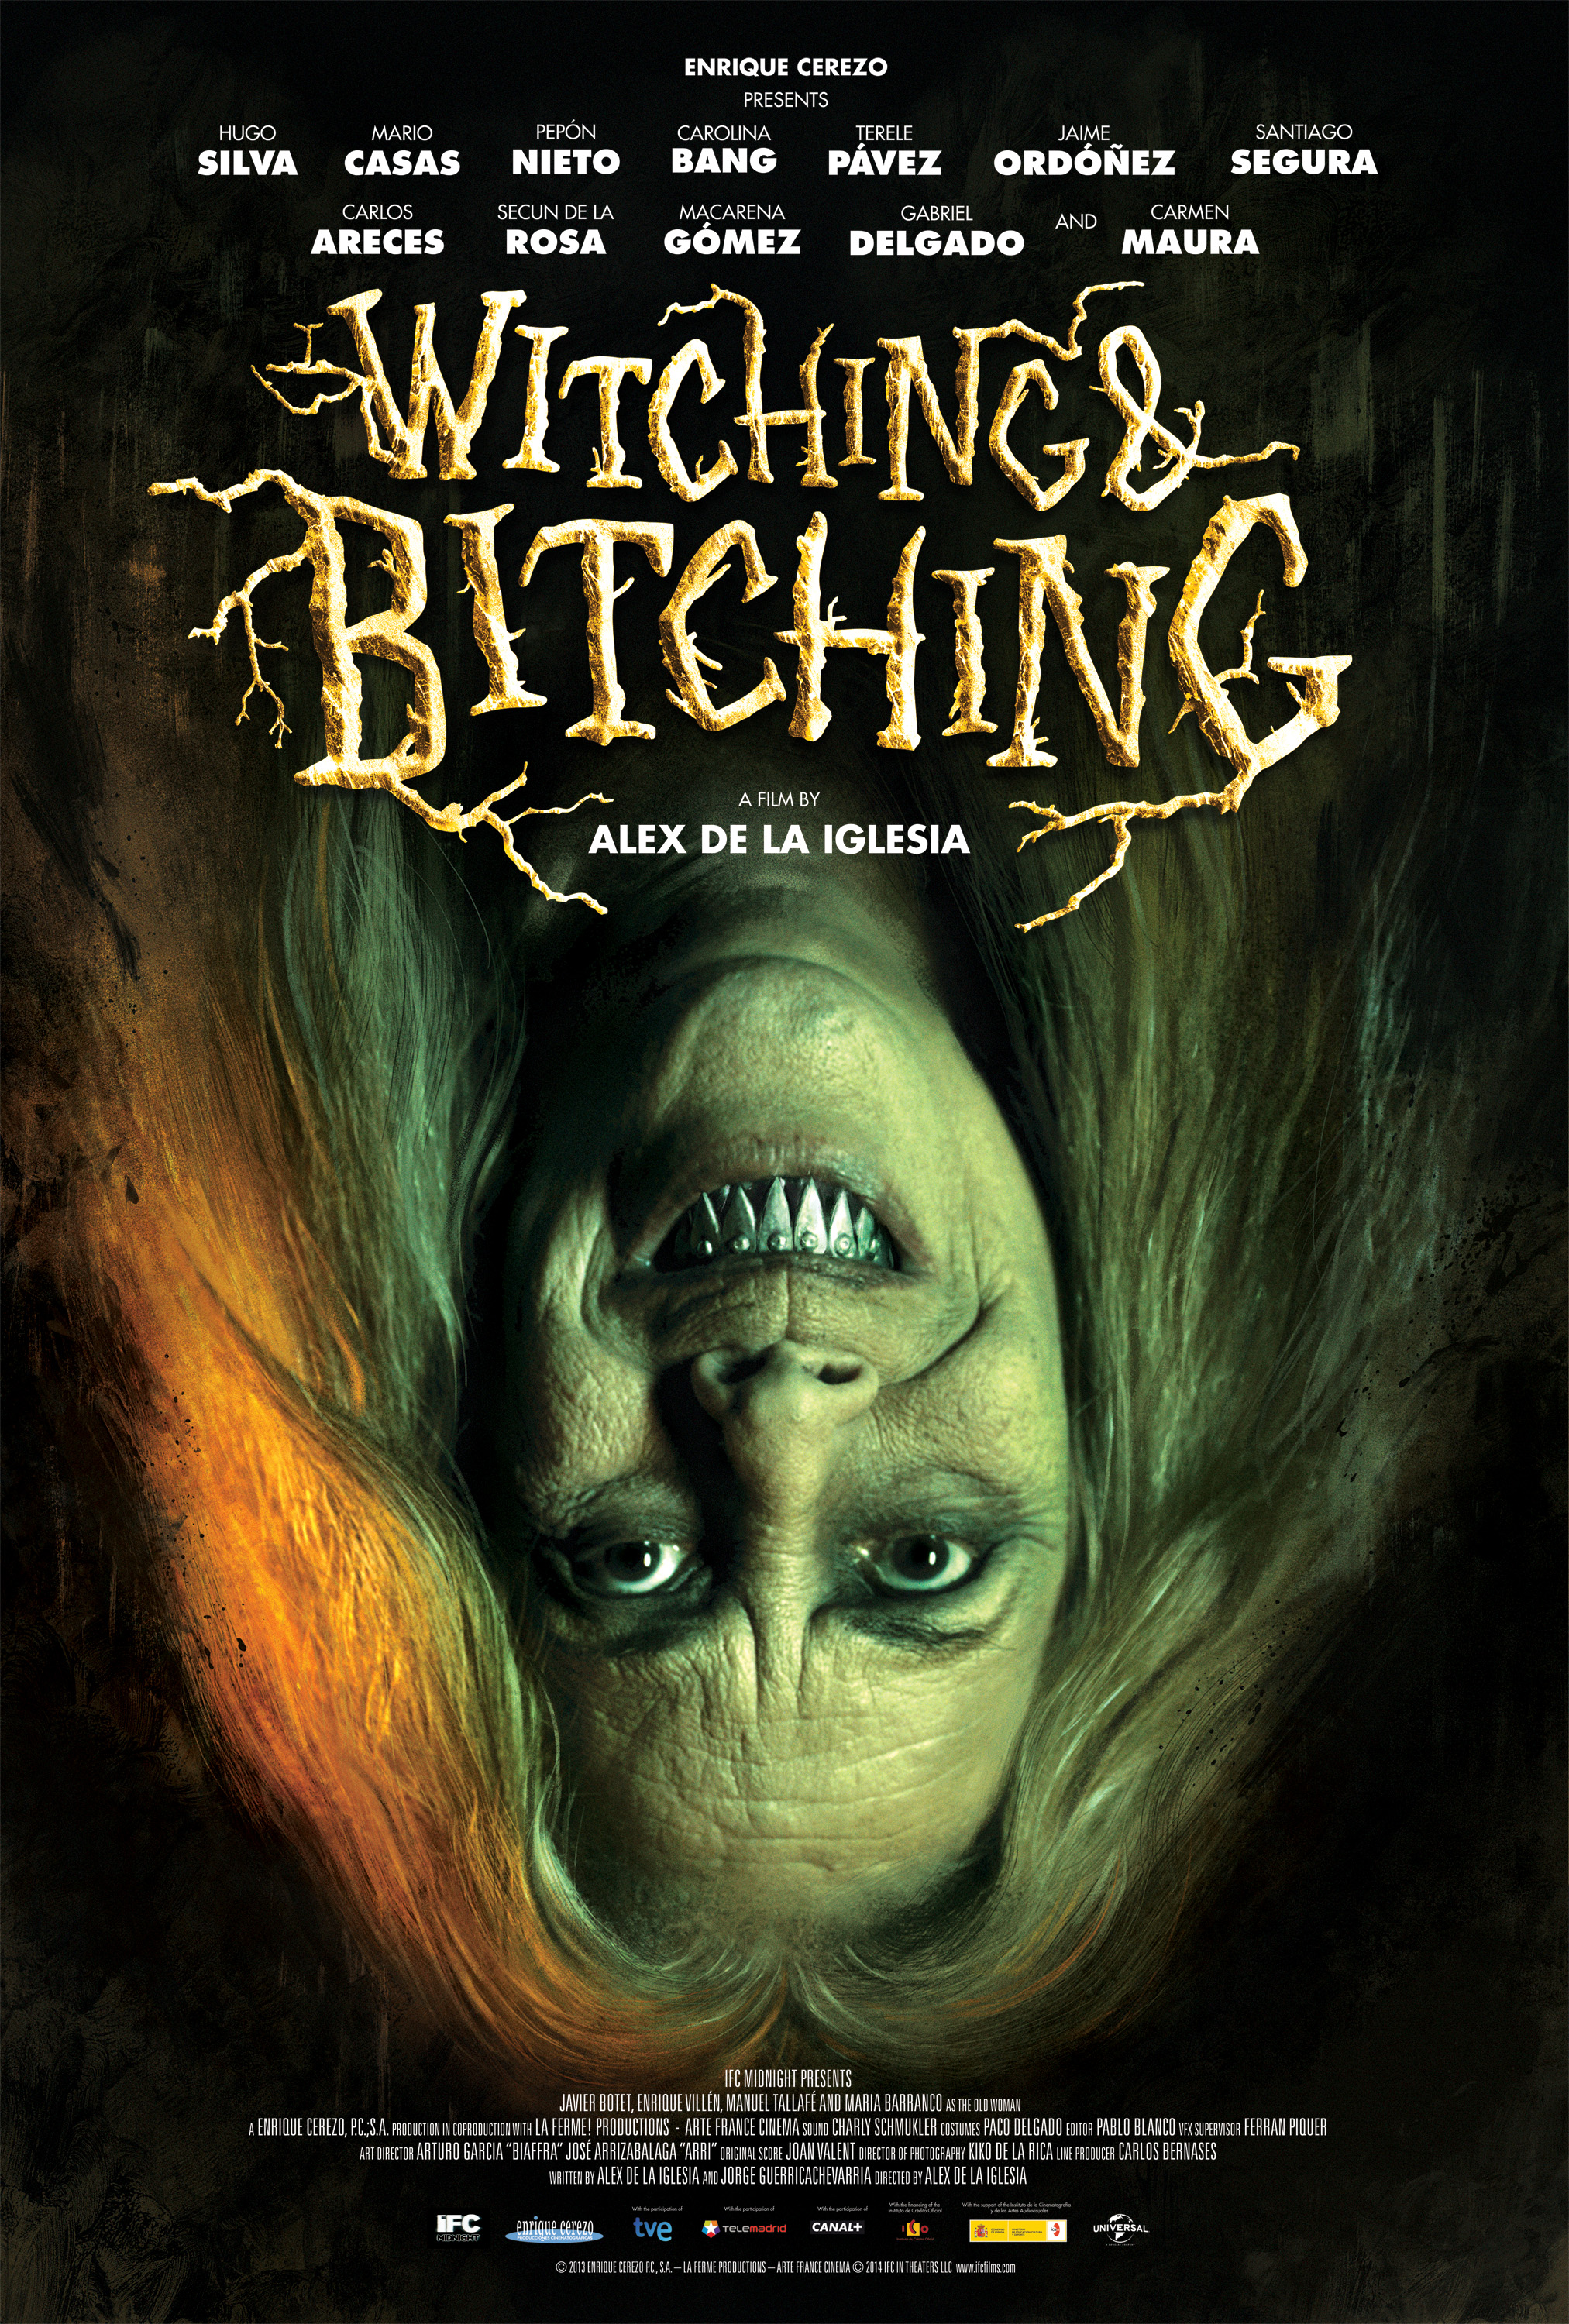 witching_and_bitching–poster_for_print–anthony_palumbo-5-21-2014-03000…